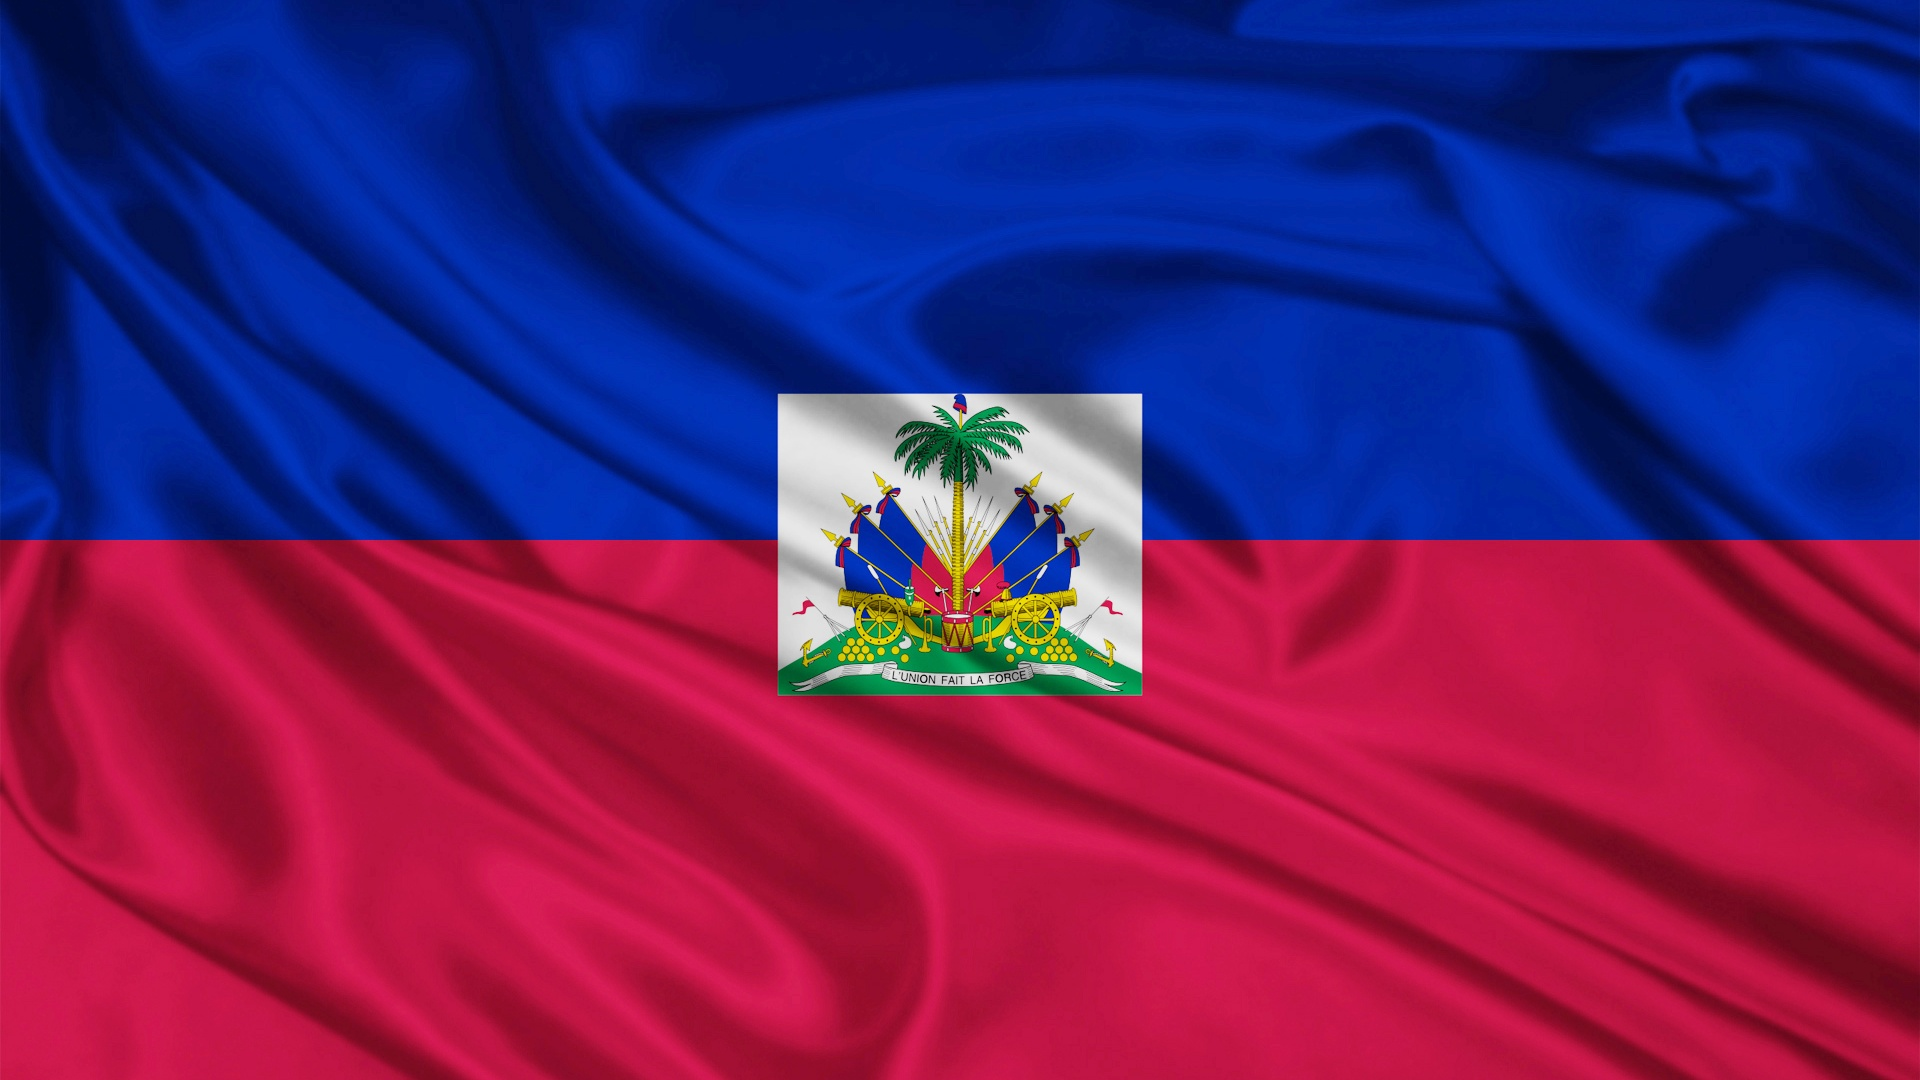 Haiti-Flag-Wallpaper